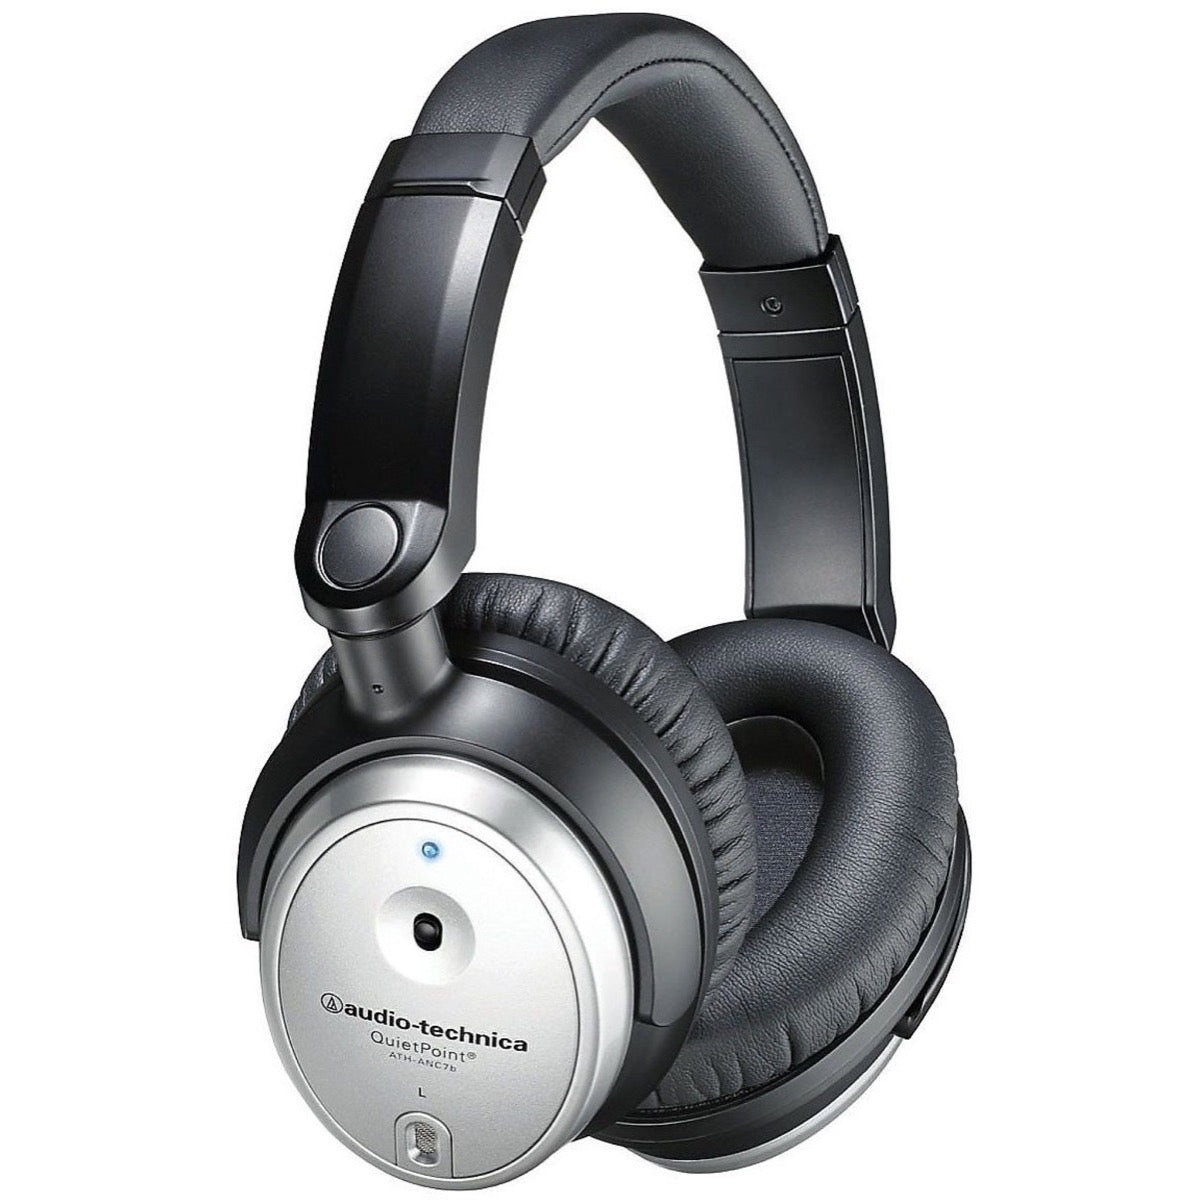 Audio-Technica ATH-ANC7b-SViS QuietPoint Noise-Cancelling Headphones